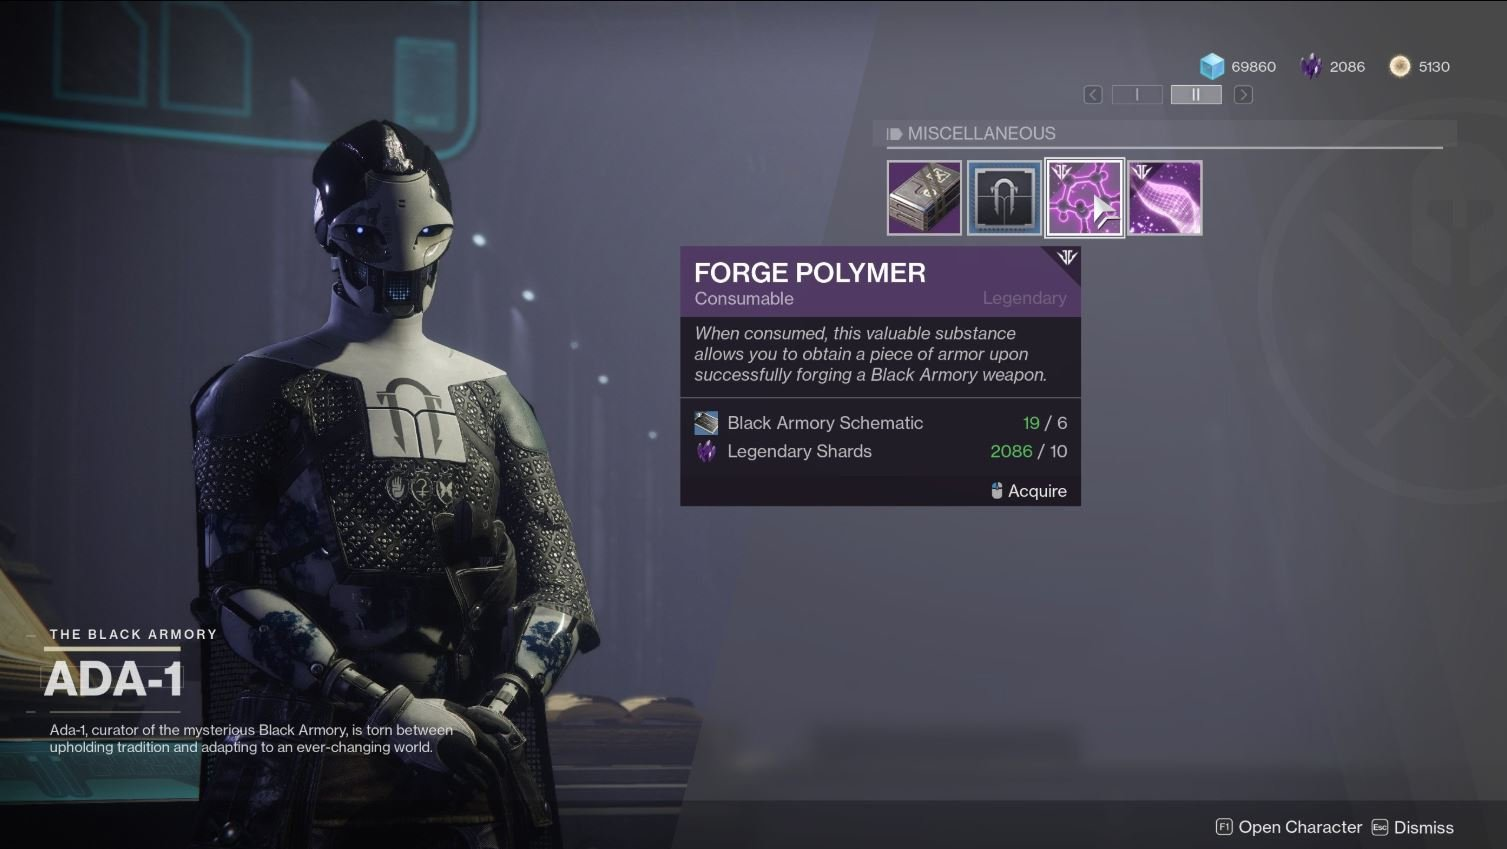 You can get Forge Polymer by purchasing it from ADA-1 in Destiny 2.